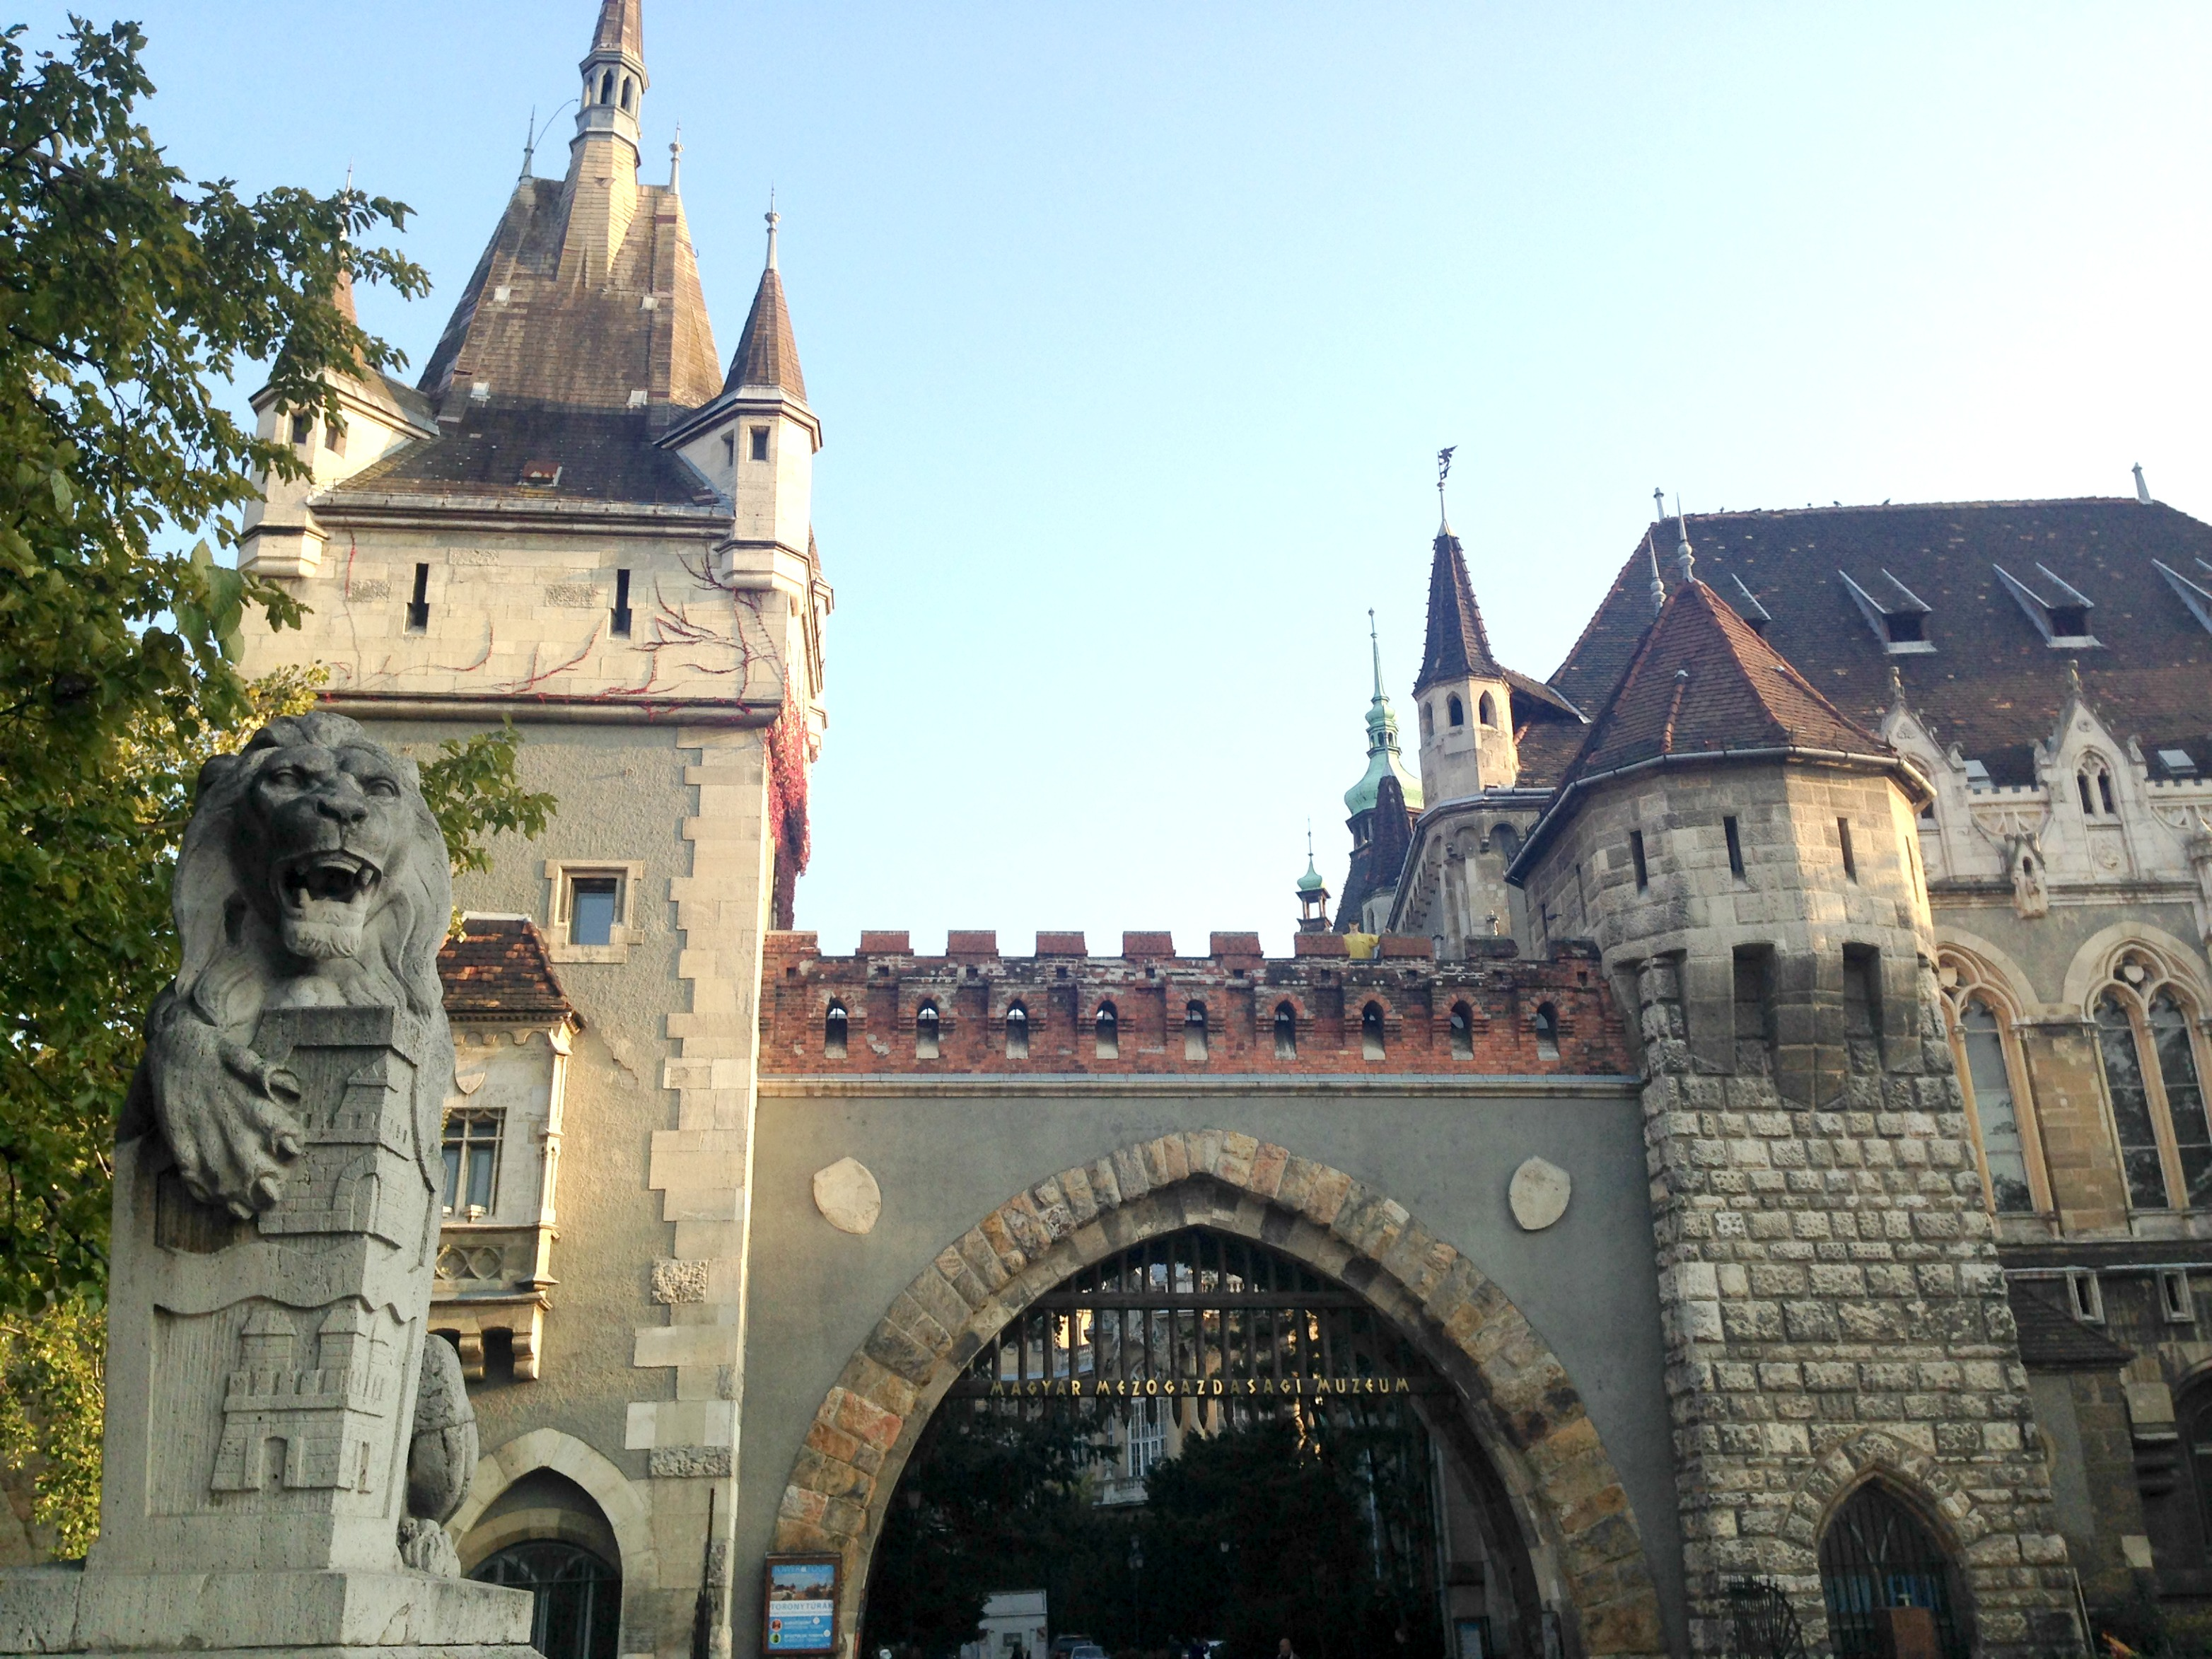 The Vajdahunyad Castle in City Park was built in 1896 as part of the Millennial Exhibition to celebrate Hungary's 1,000th year.